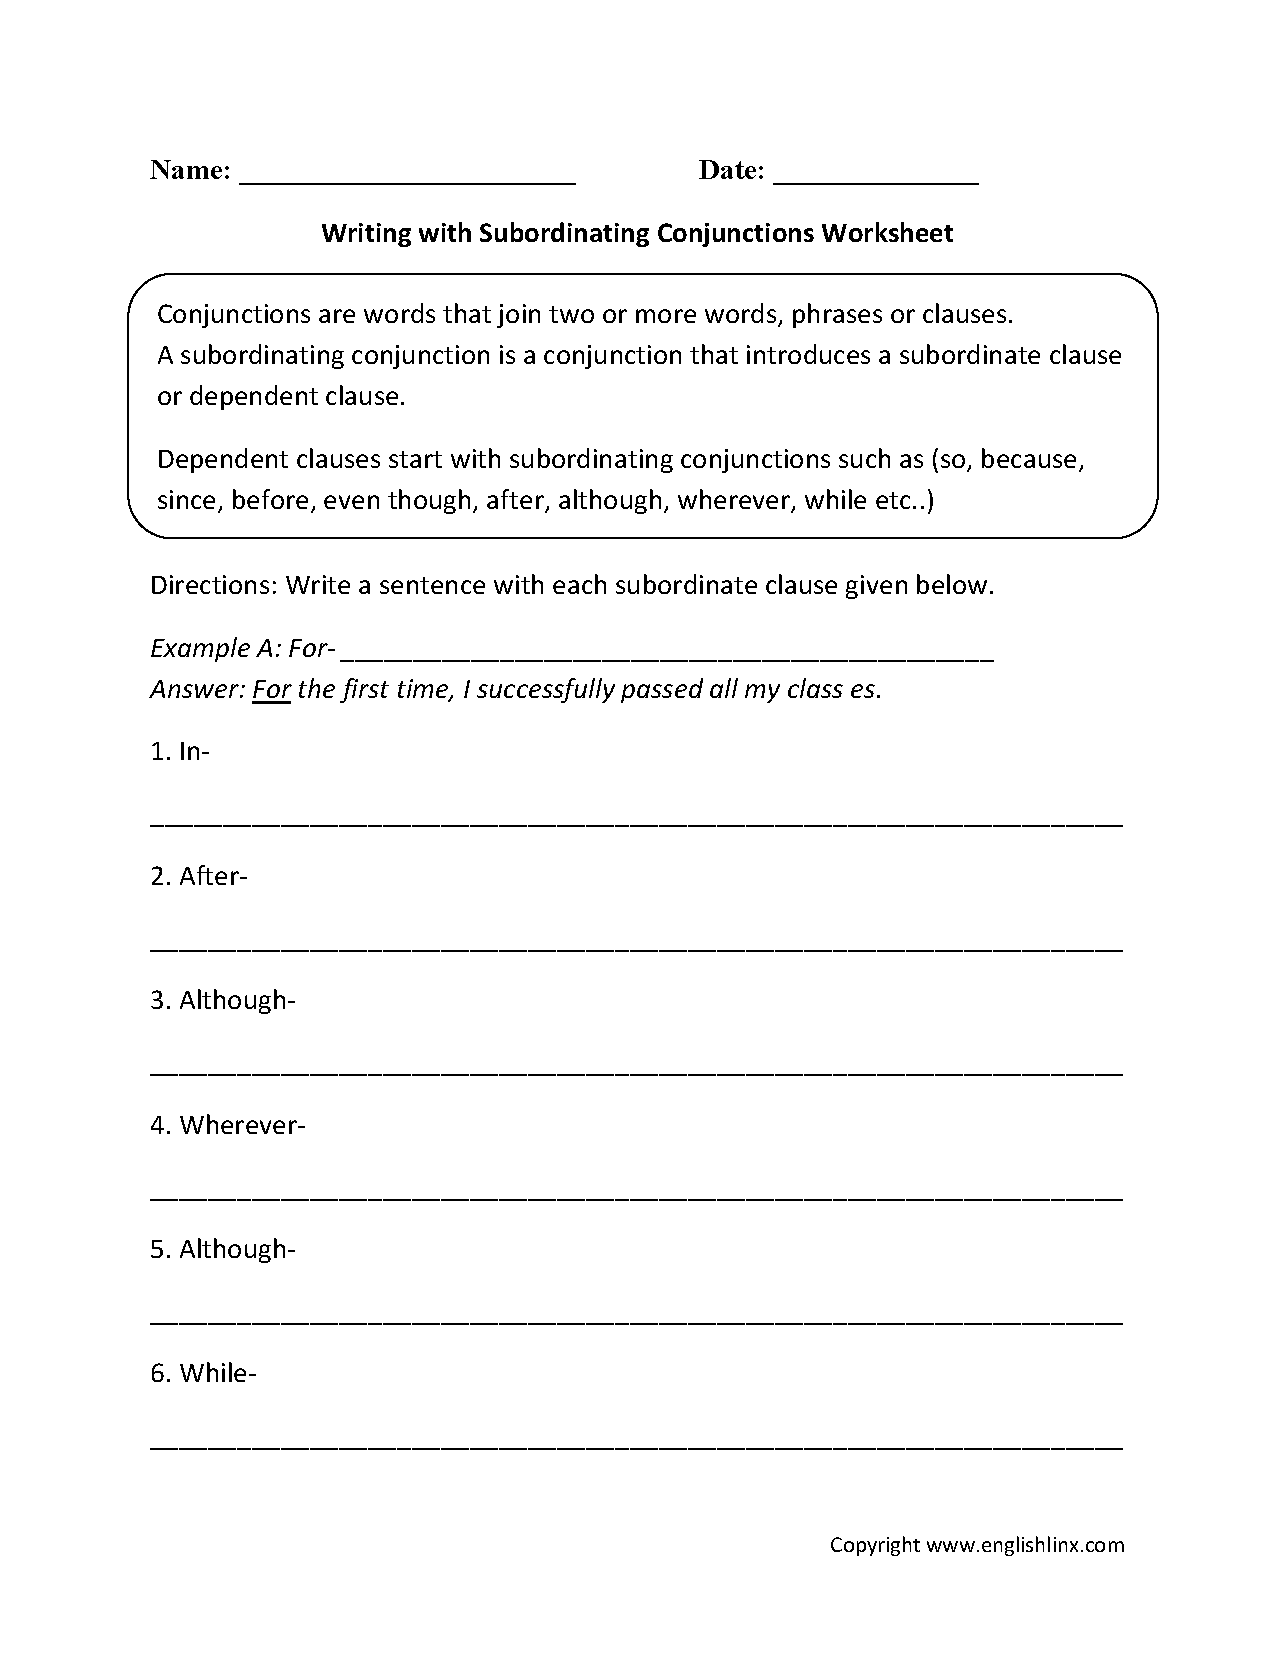 Worksheets Correlative Conjunctions Worksheet englishlinx com conjunctions worksheets subordinating worksheets